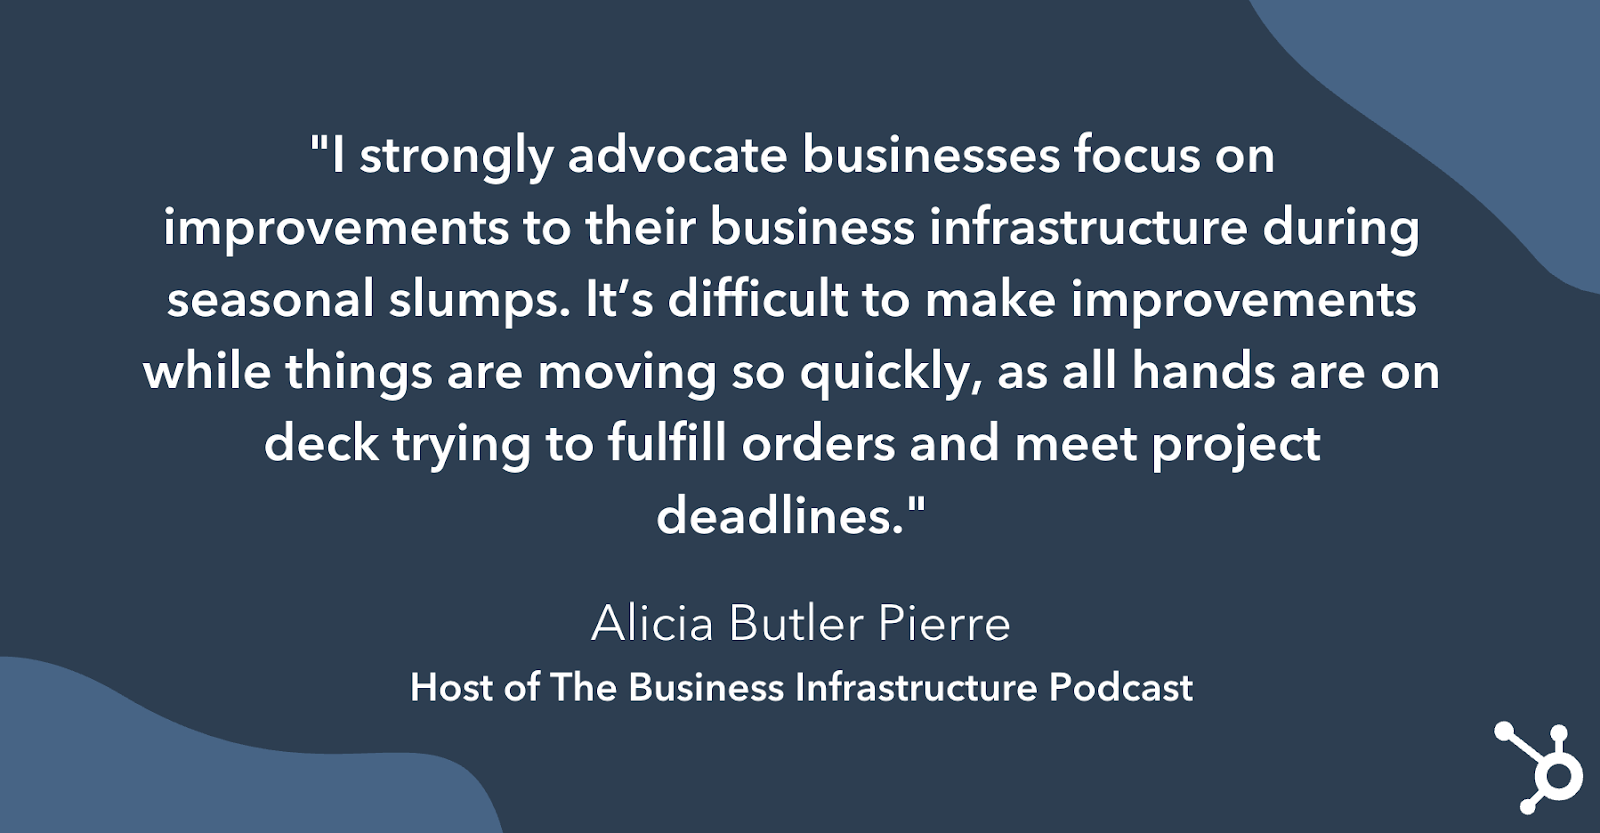 Quote from Alicia Butler Pierre on why businesses should use slow times to plan for busier times when its harder to make improvements